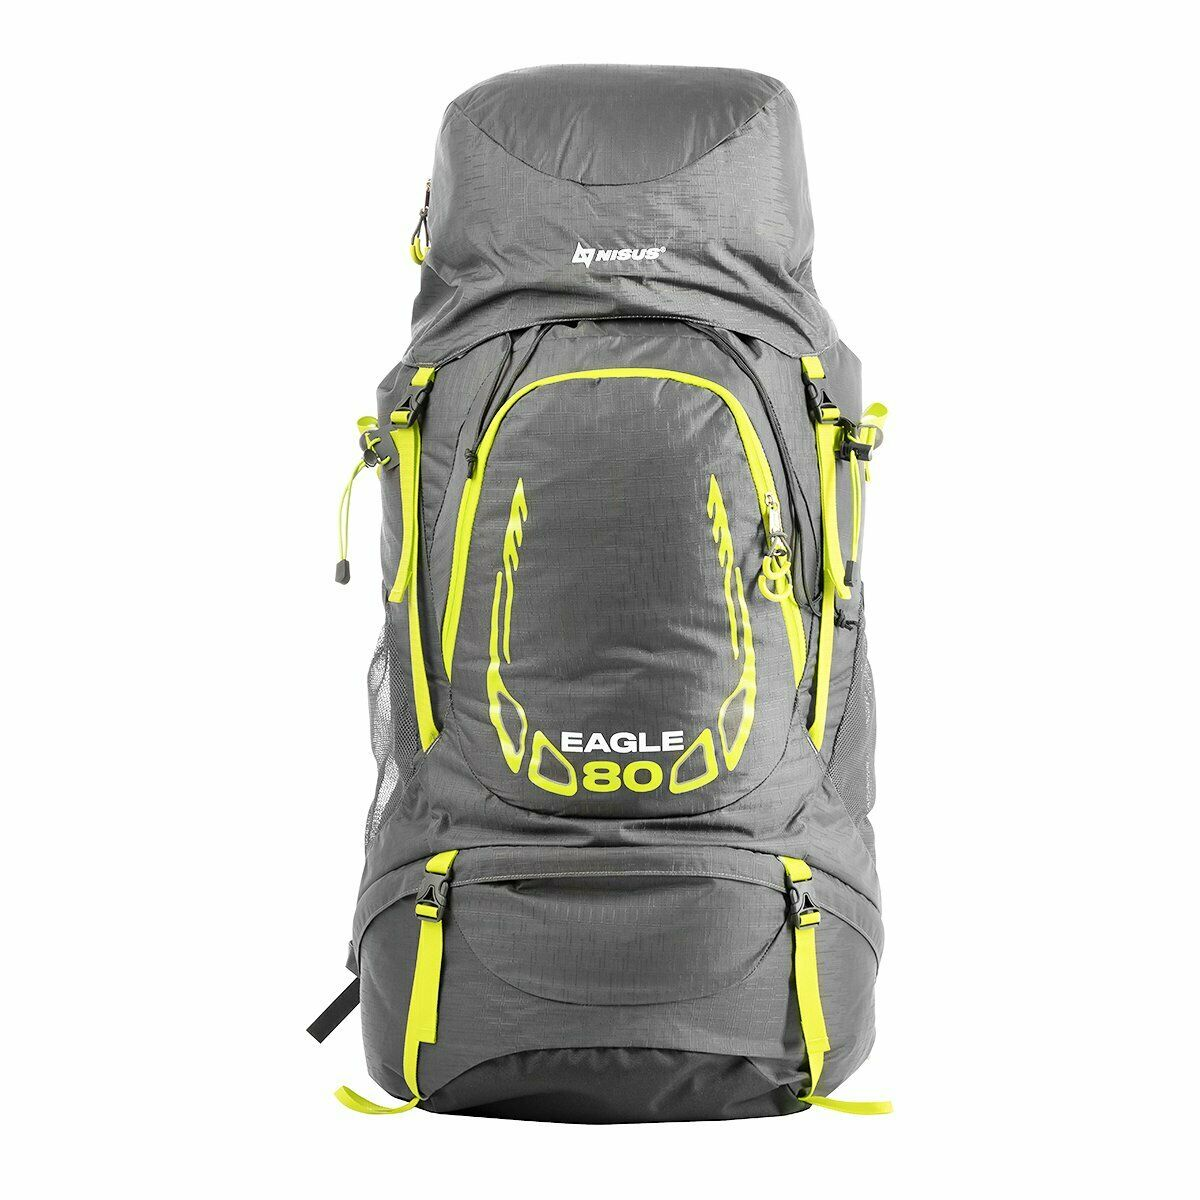 Trakk Shell Hiking Backpack With Waterproof Speaker Lightweight Max Bass Audio For Sale Online Ebay